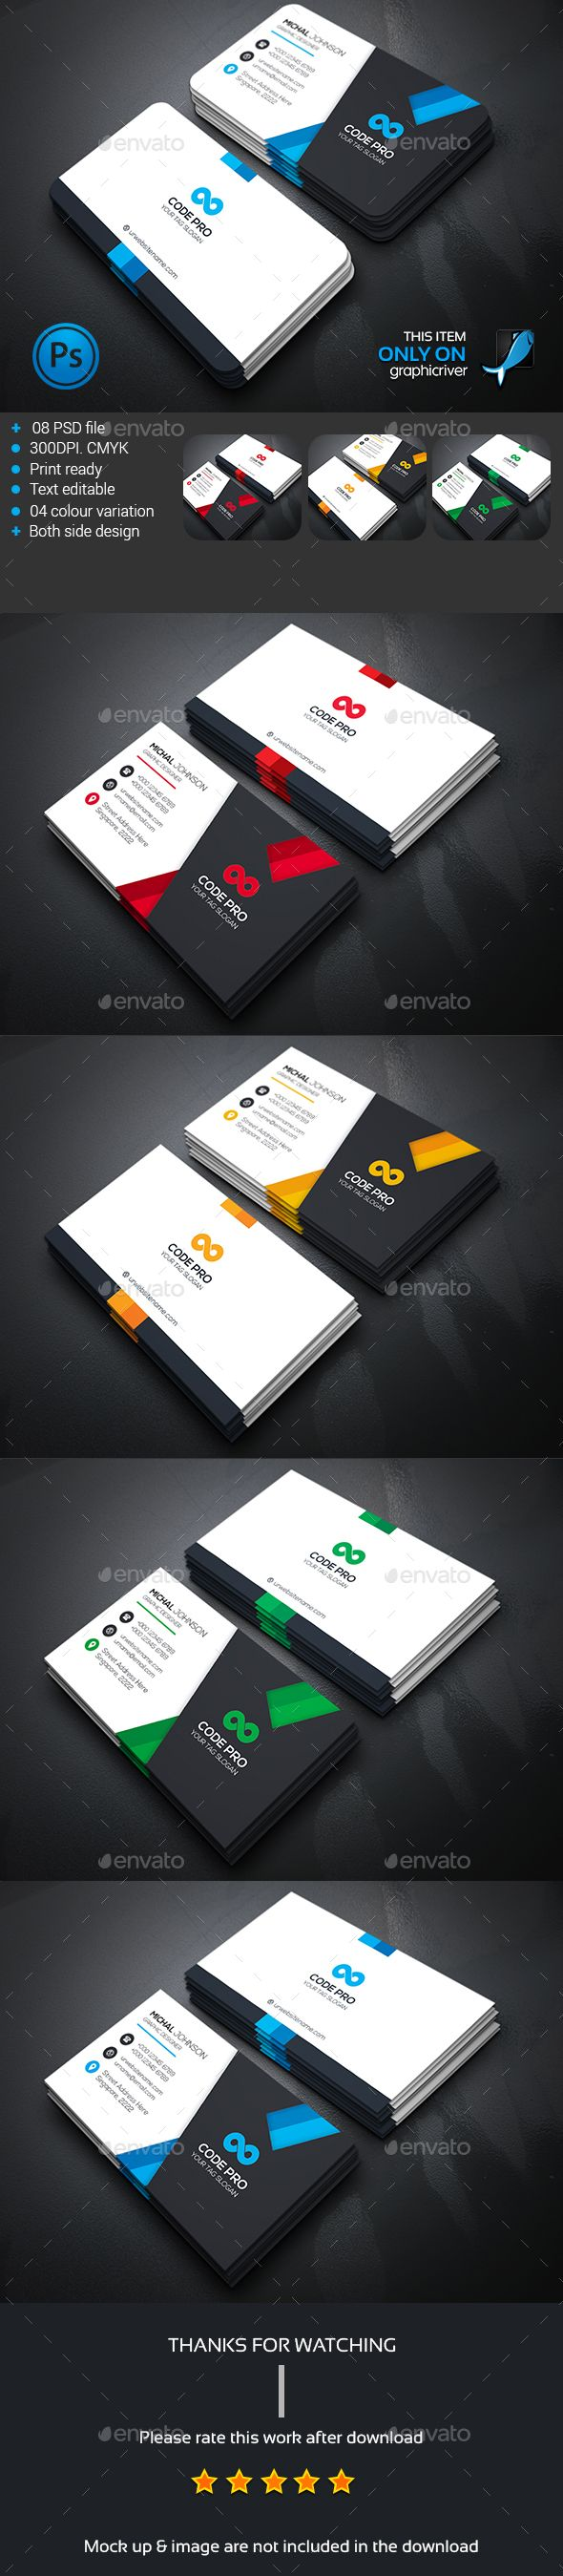 Modern Corporate Business Card Template PSD #design Download: http://graphicriver.net/item/modern-corporate-business-card/13831424?ref=ksioks